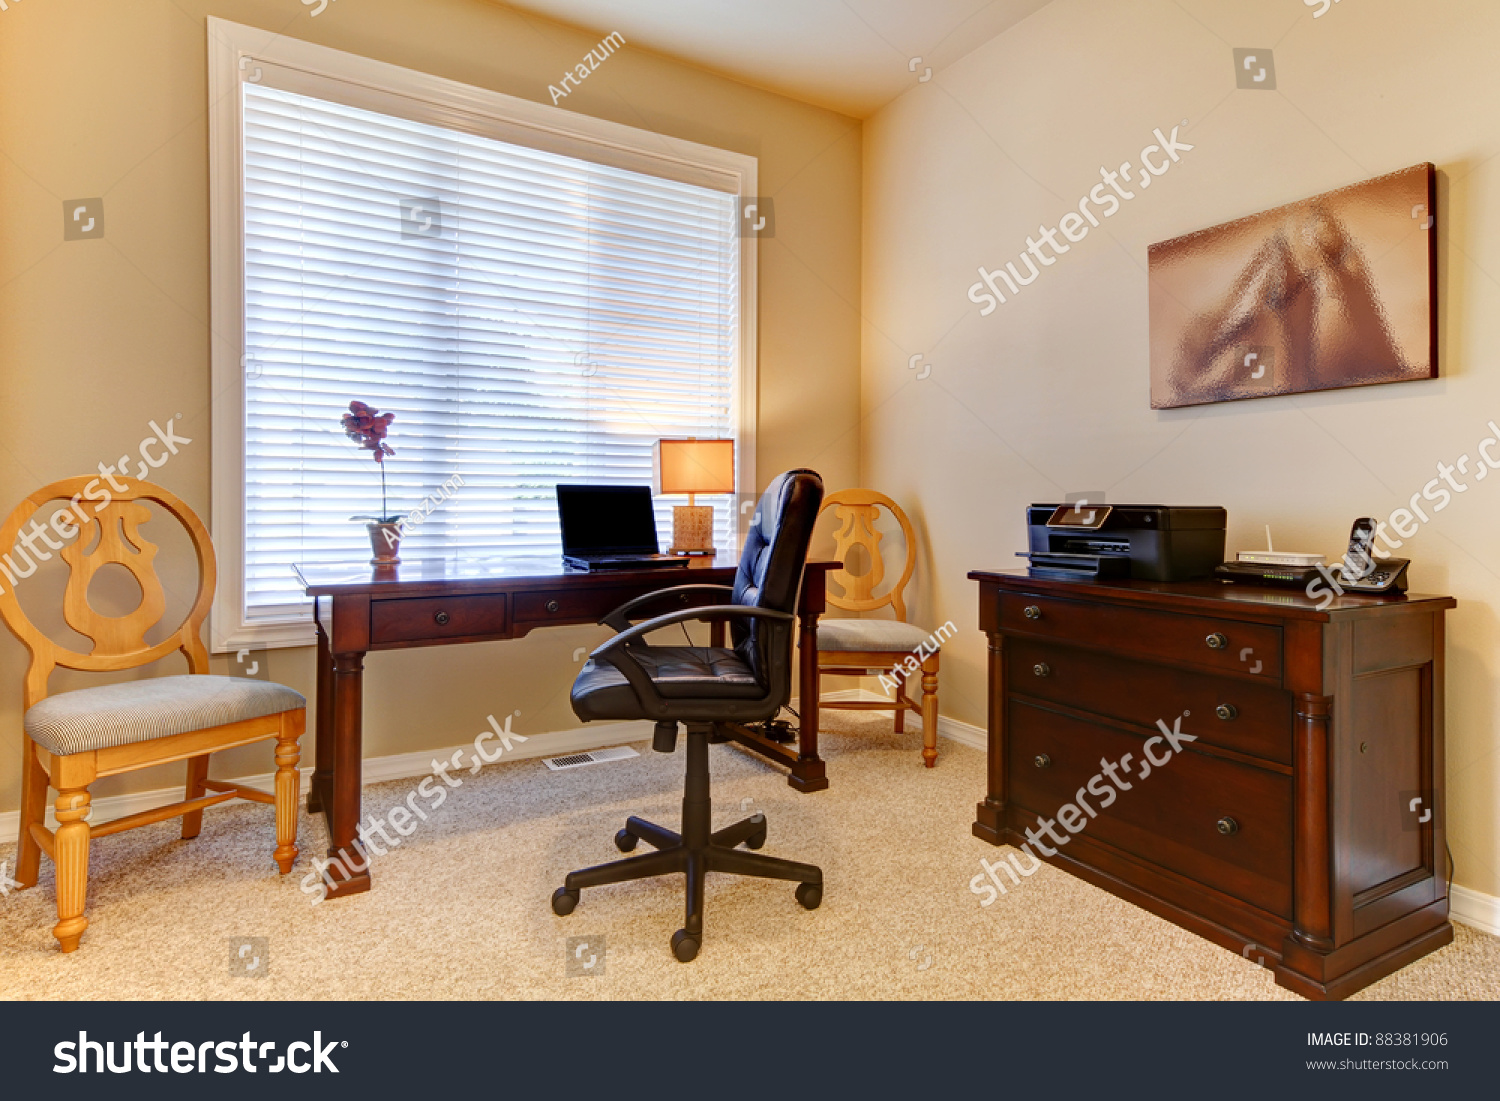 Prime Cozy Simple Home Office Stock Photo 88381906 Shutterstock Largest Home Design Picture Inspirations Pitcheantrous